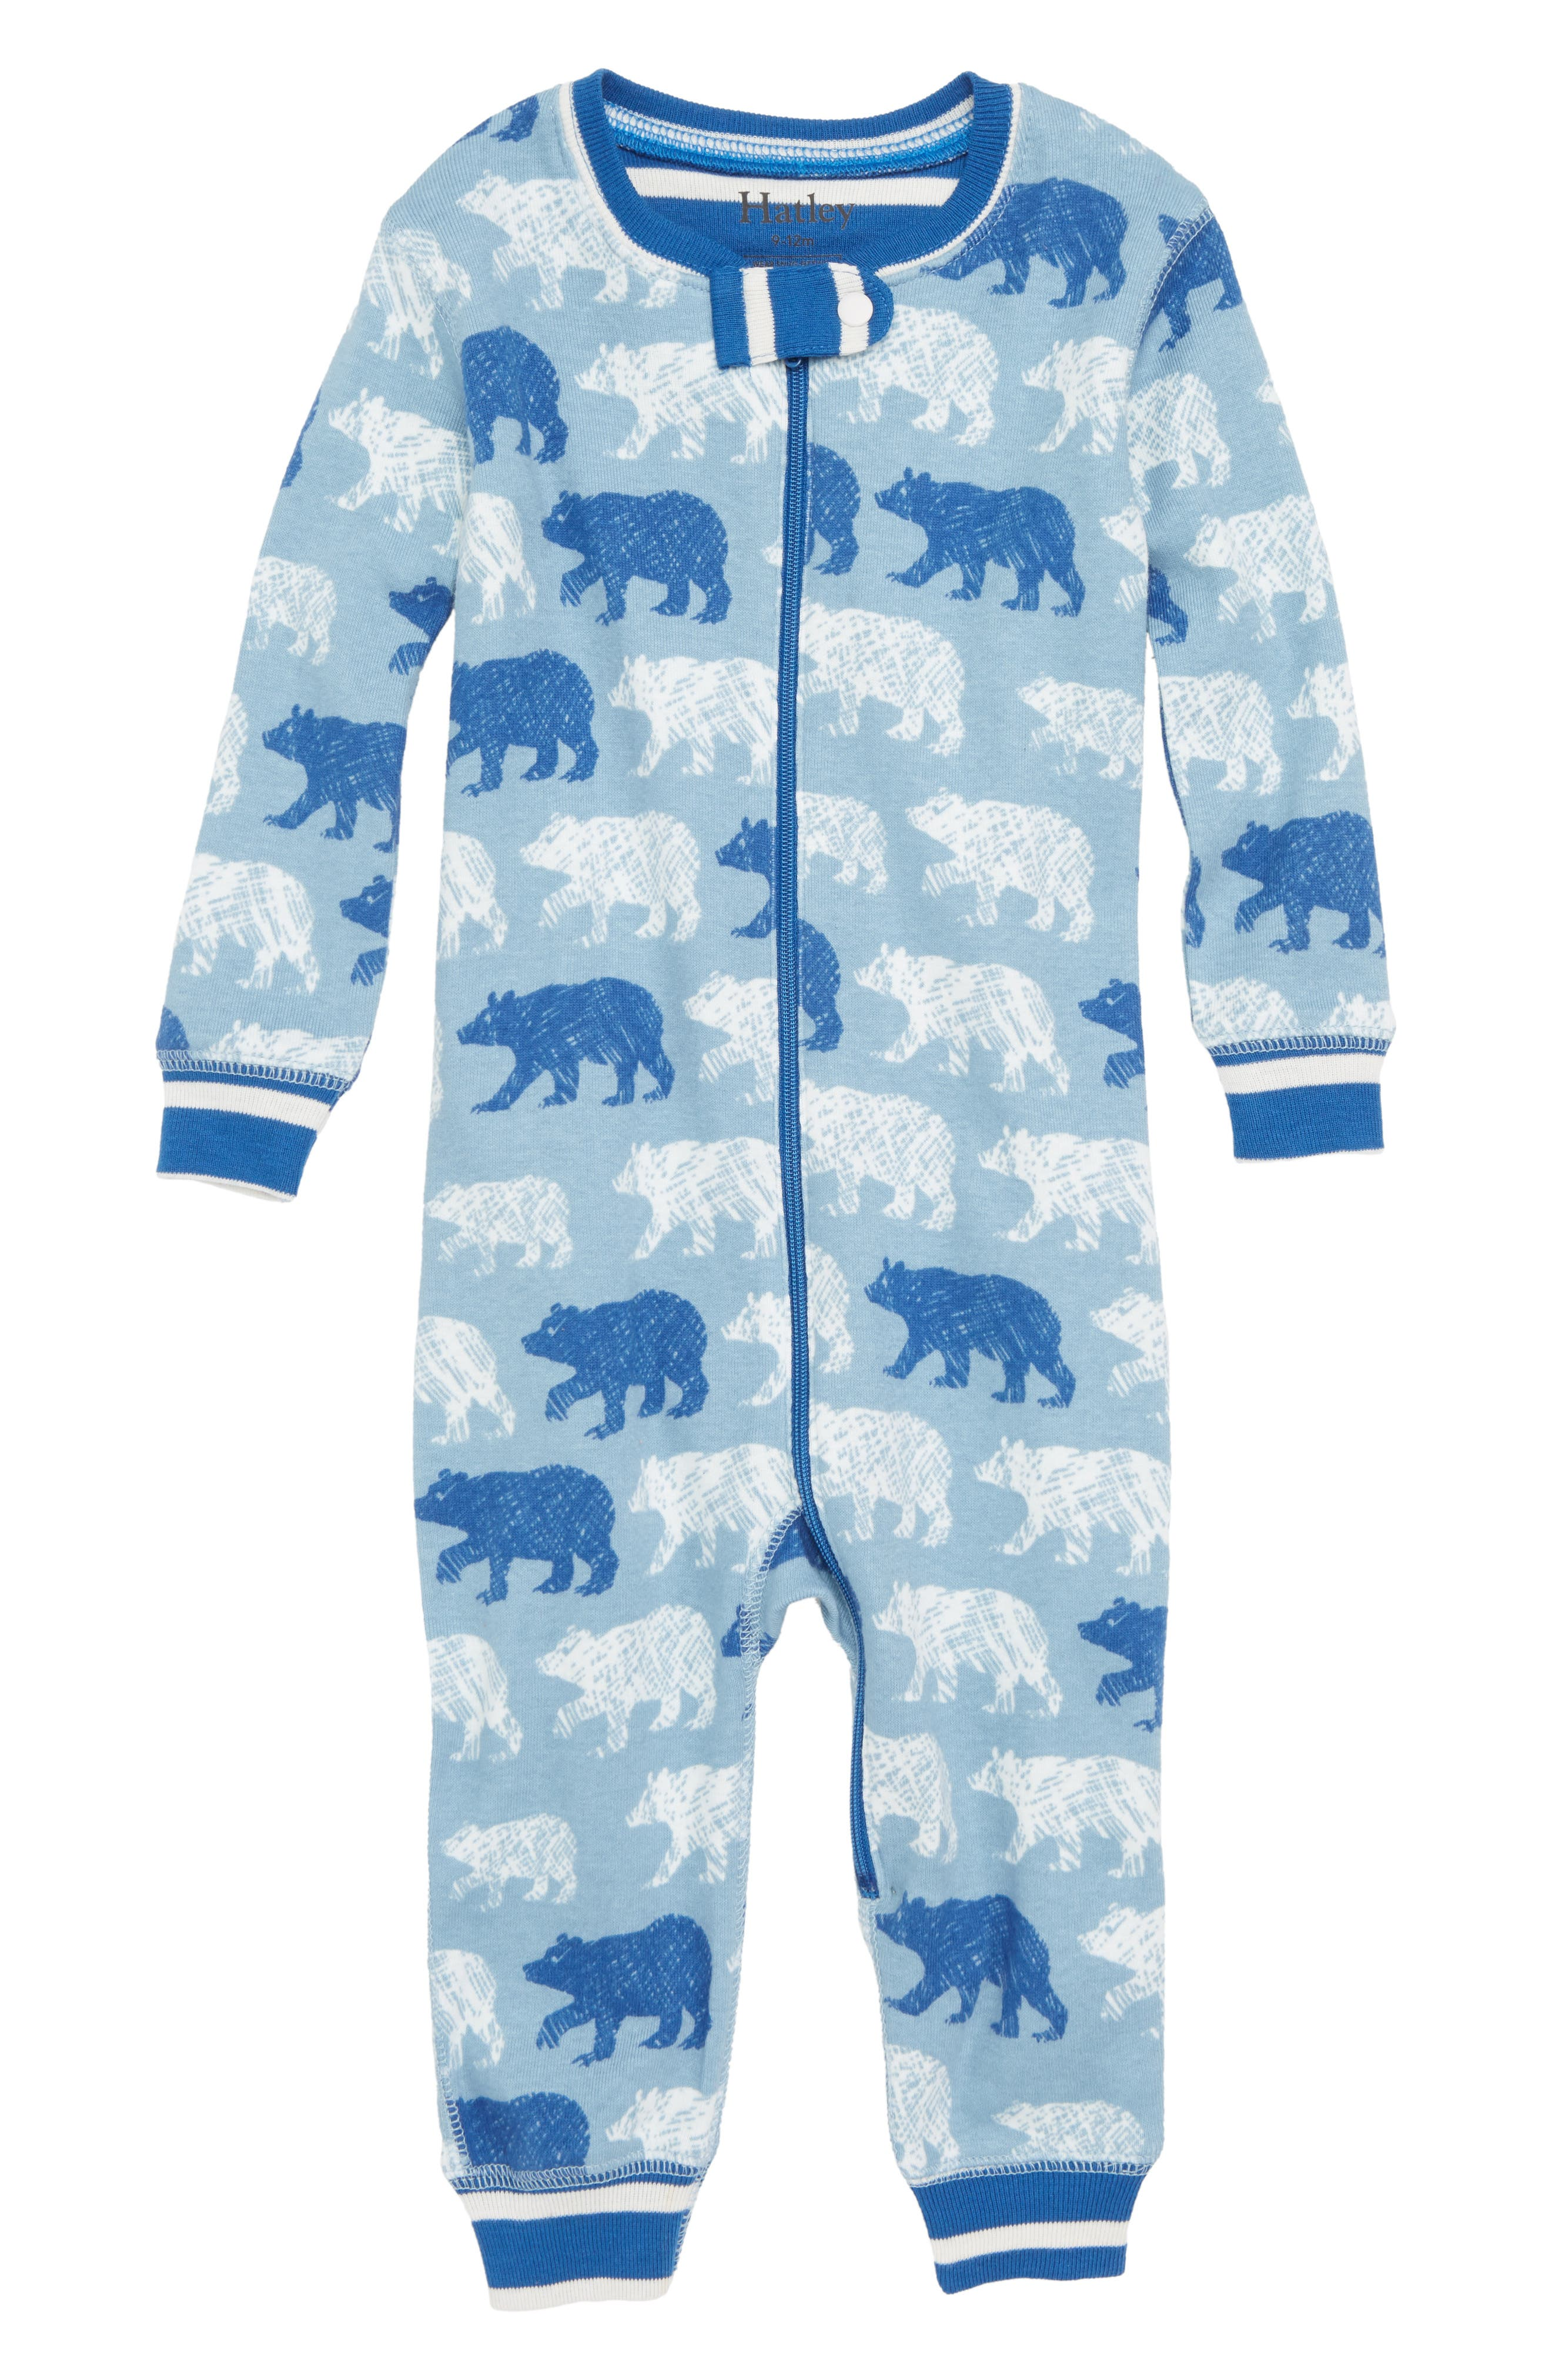 Organic Cotton Fitted One-Piece Pajamas,                             Main thumbnail 1, color,                             400